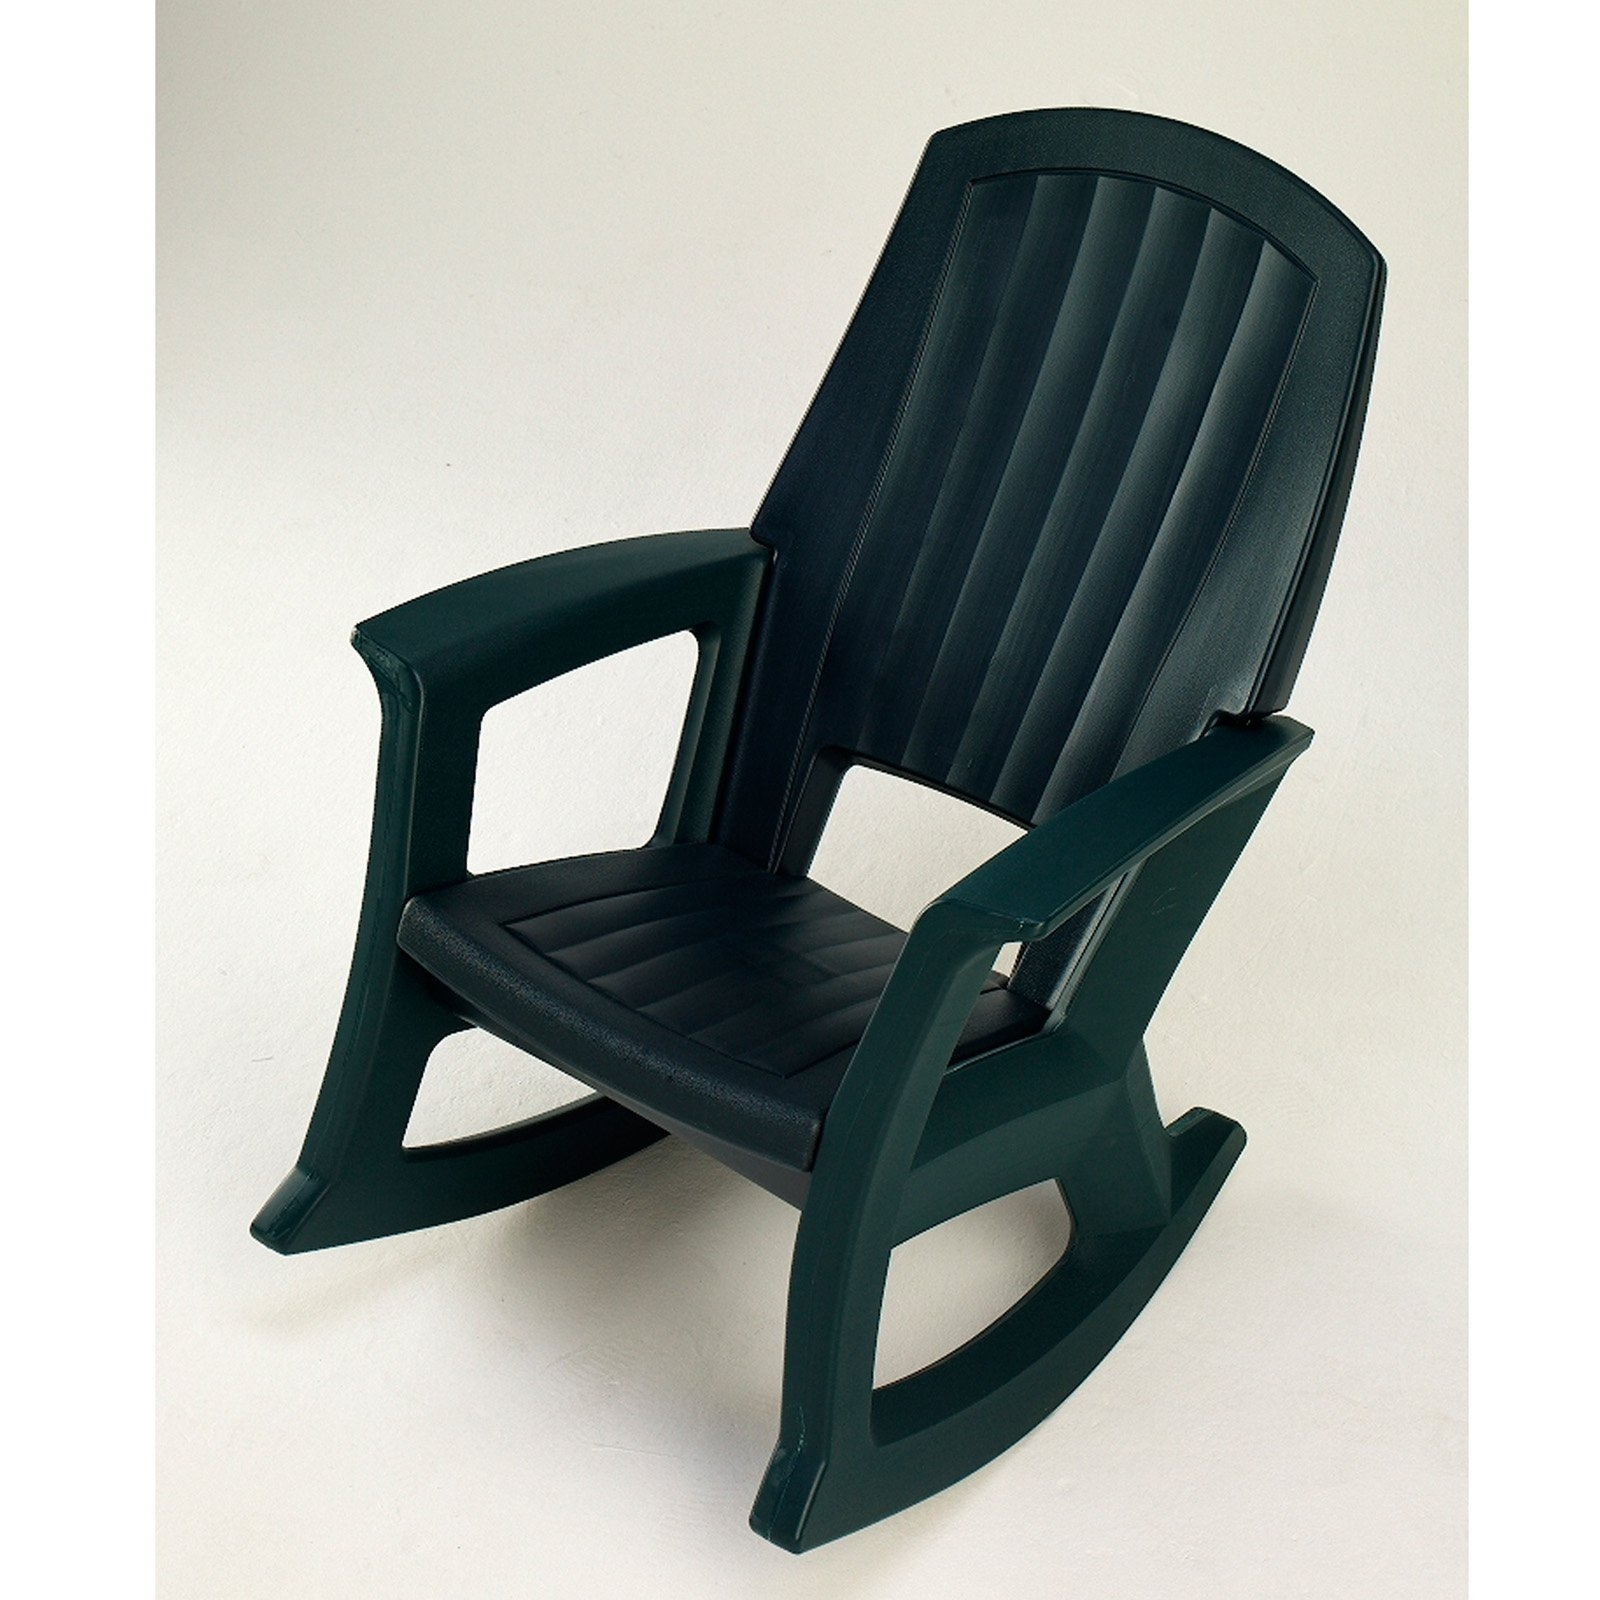 Semco Recycled Plastic Rocking Chair – Walmart With Regard To Rocking Chairs At Walmart (#14 of 15)